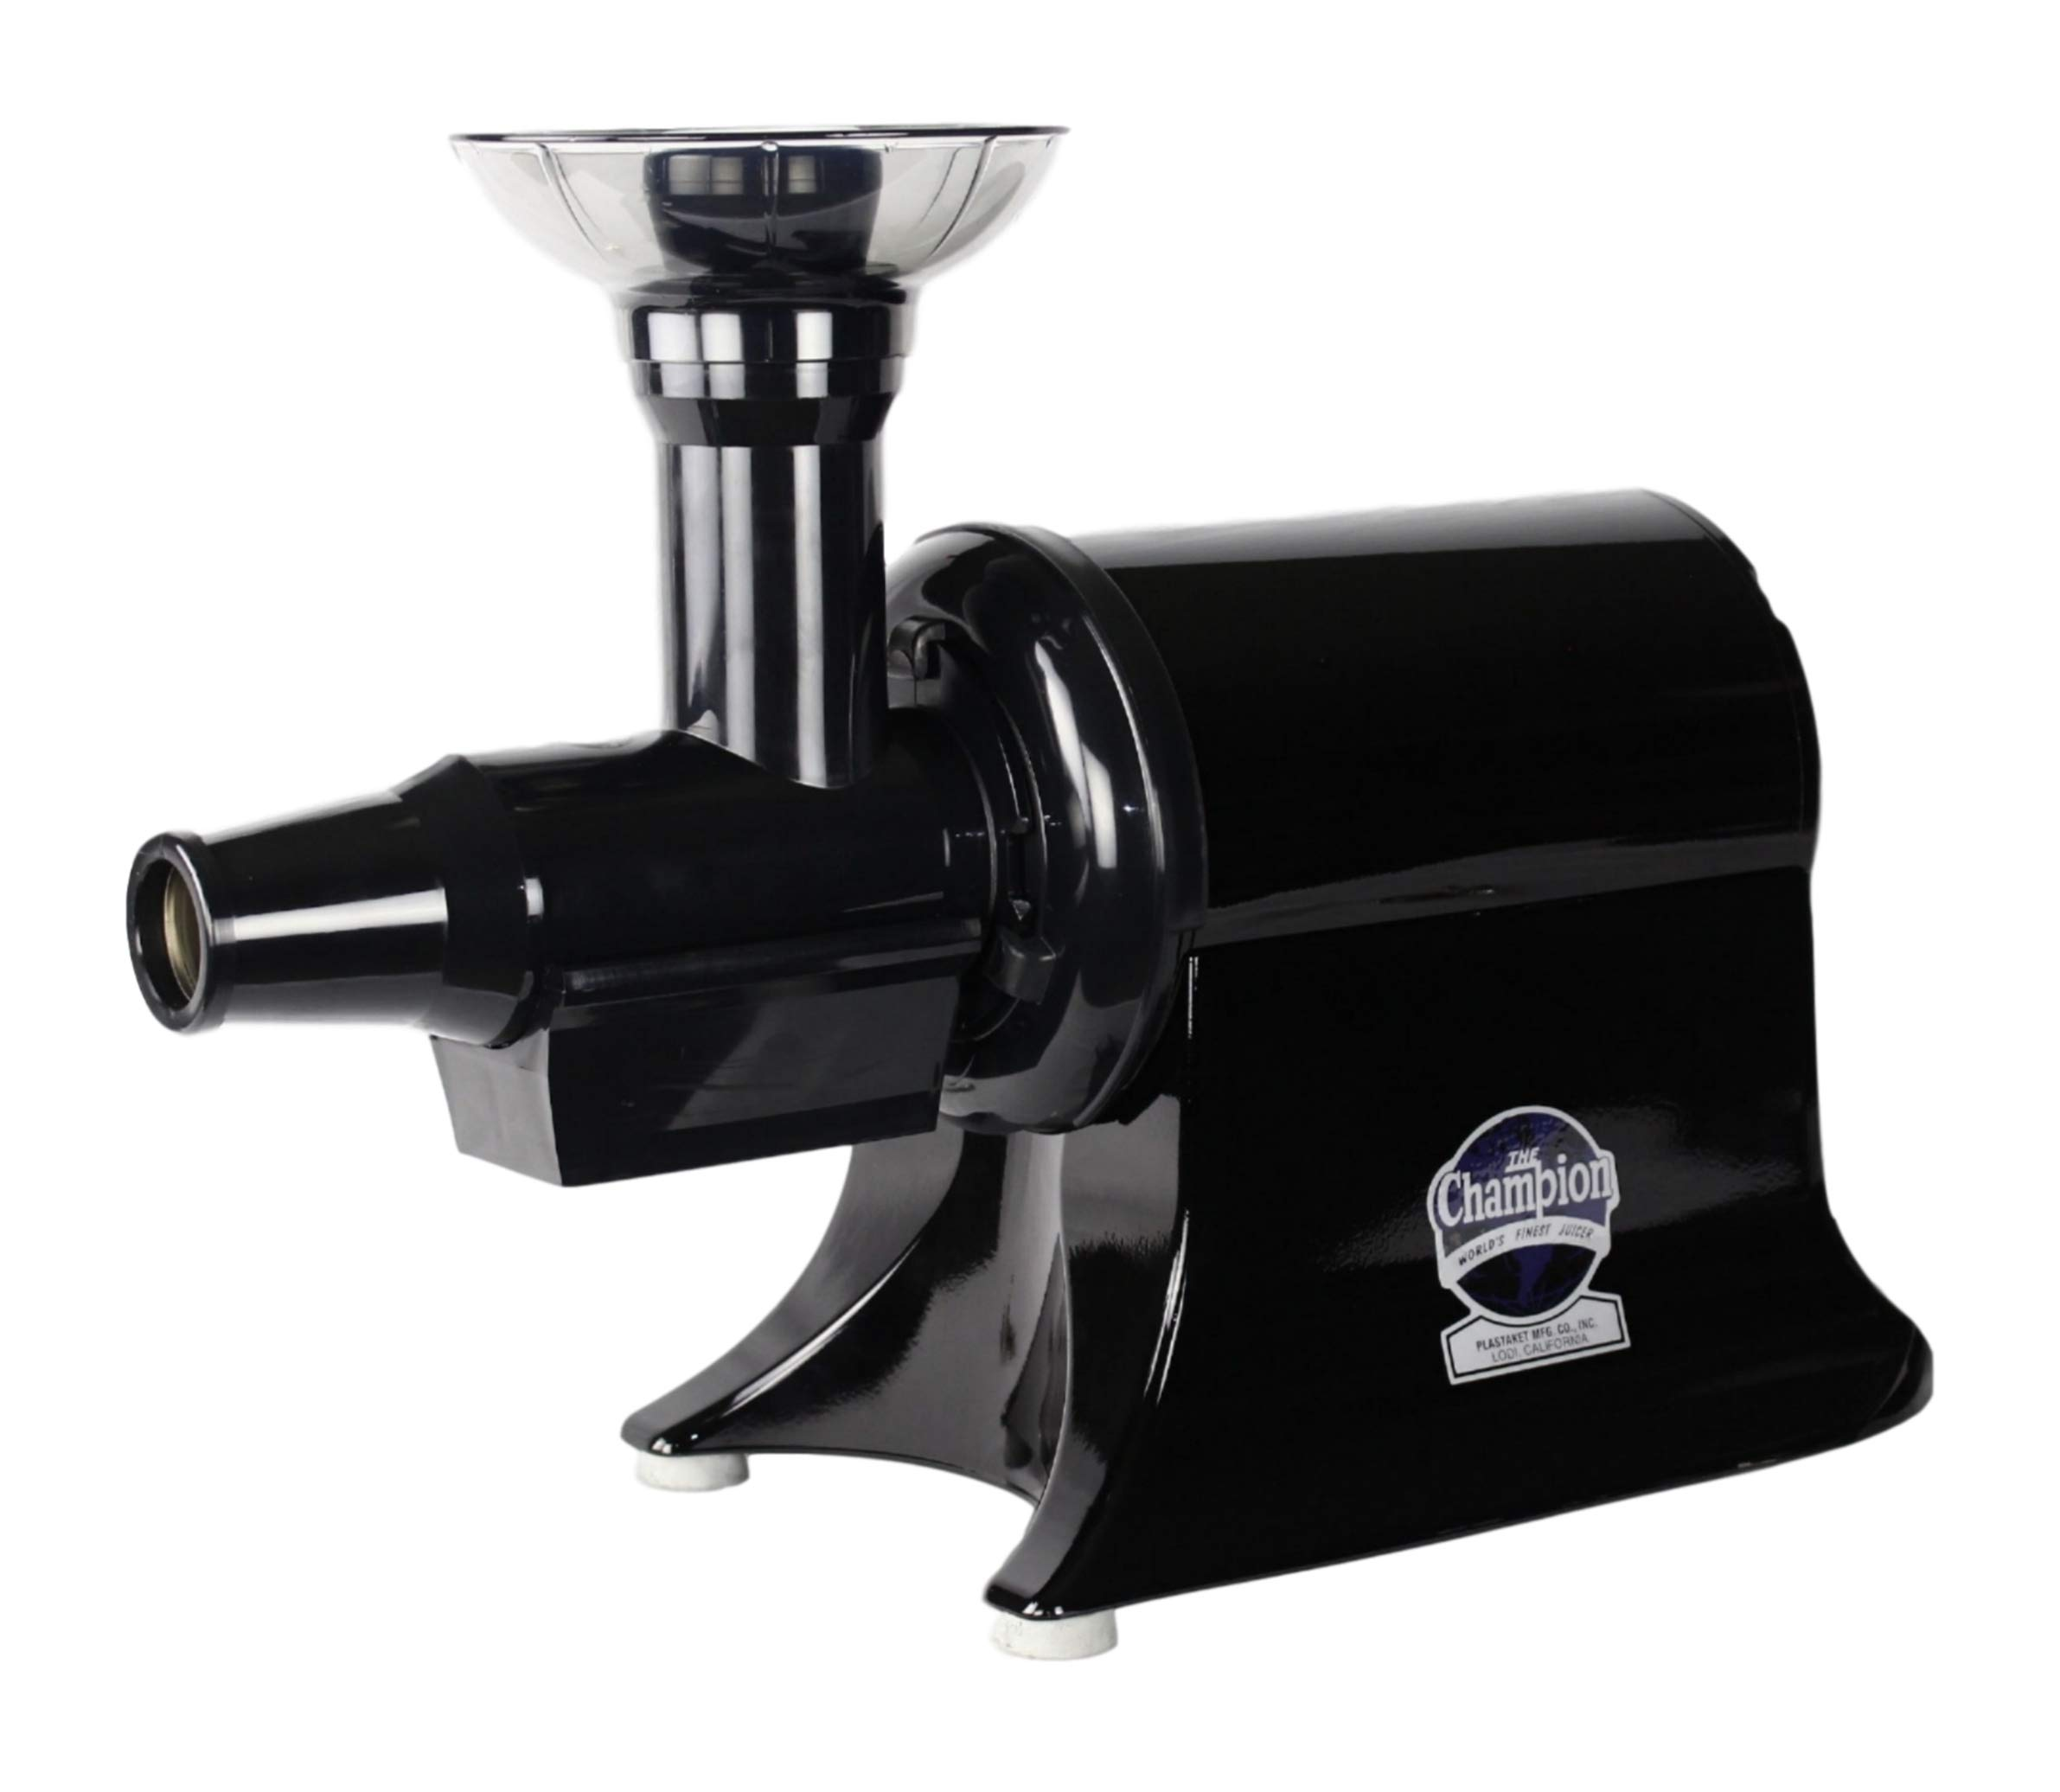 Champion Juicer ???Commercial Heavy Duty Juicer ???Black ???G5 PG710